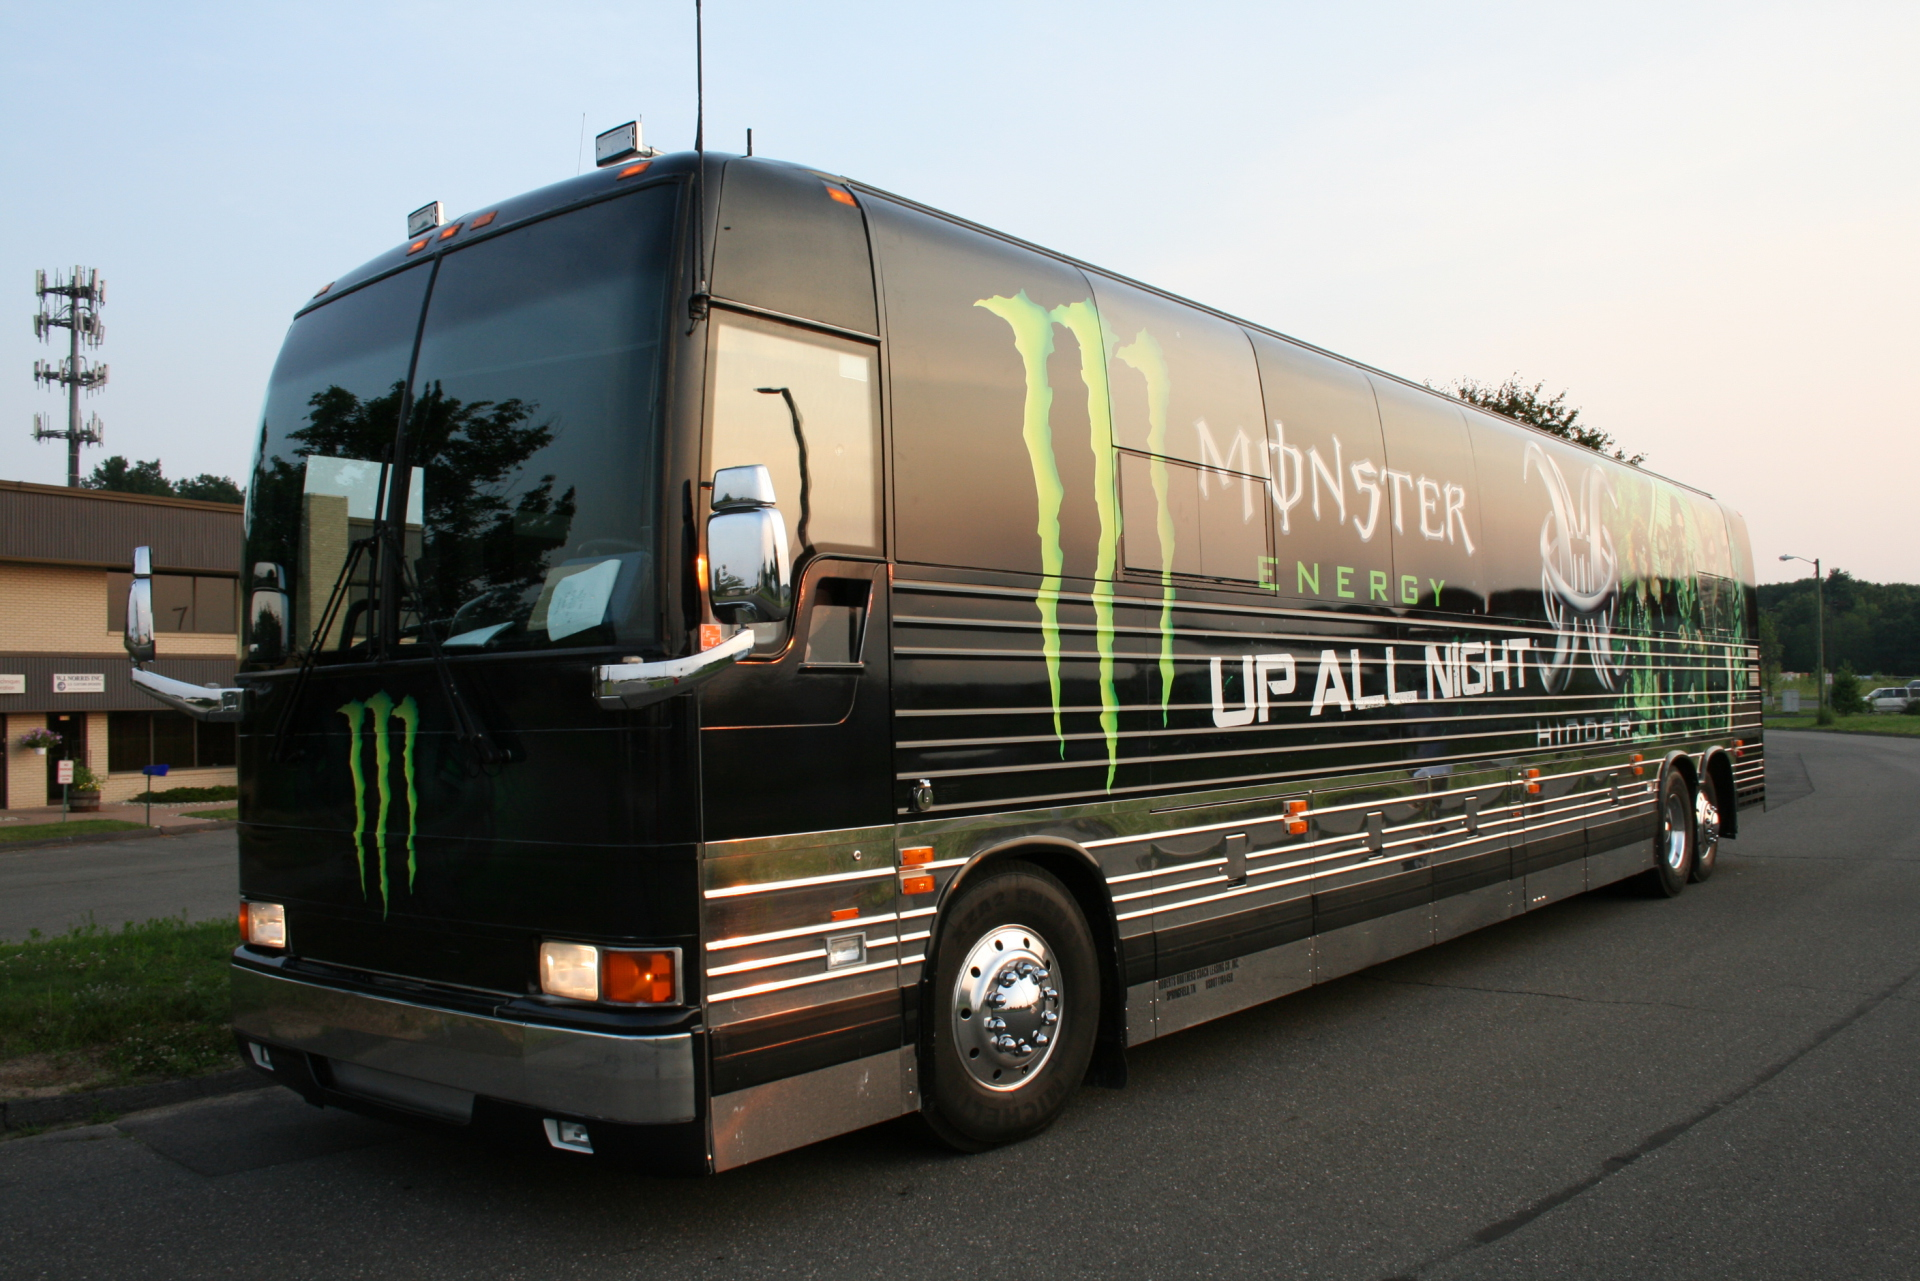 Hinder vs Monster Energy